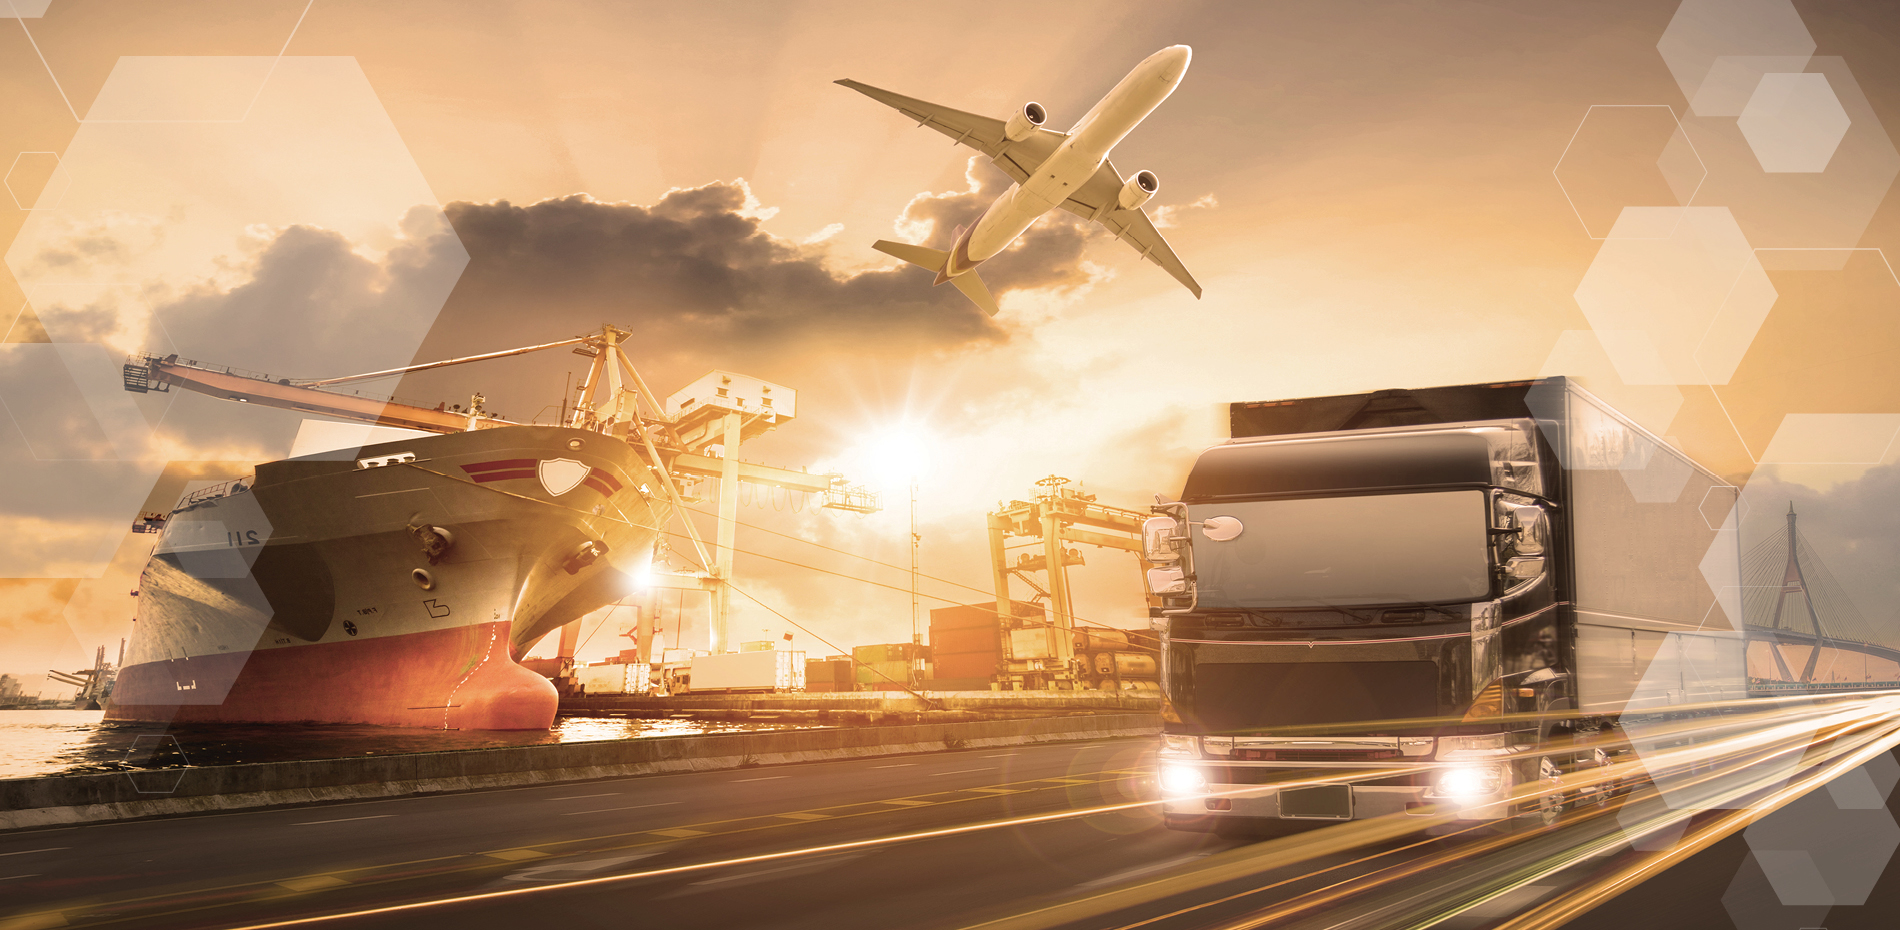 Several modes of transportation in supply chain, including an airplane in the sky, a large truck on a highway, a ship in a port, and shipping containers in the background.